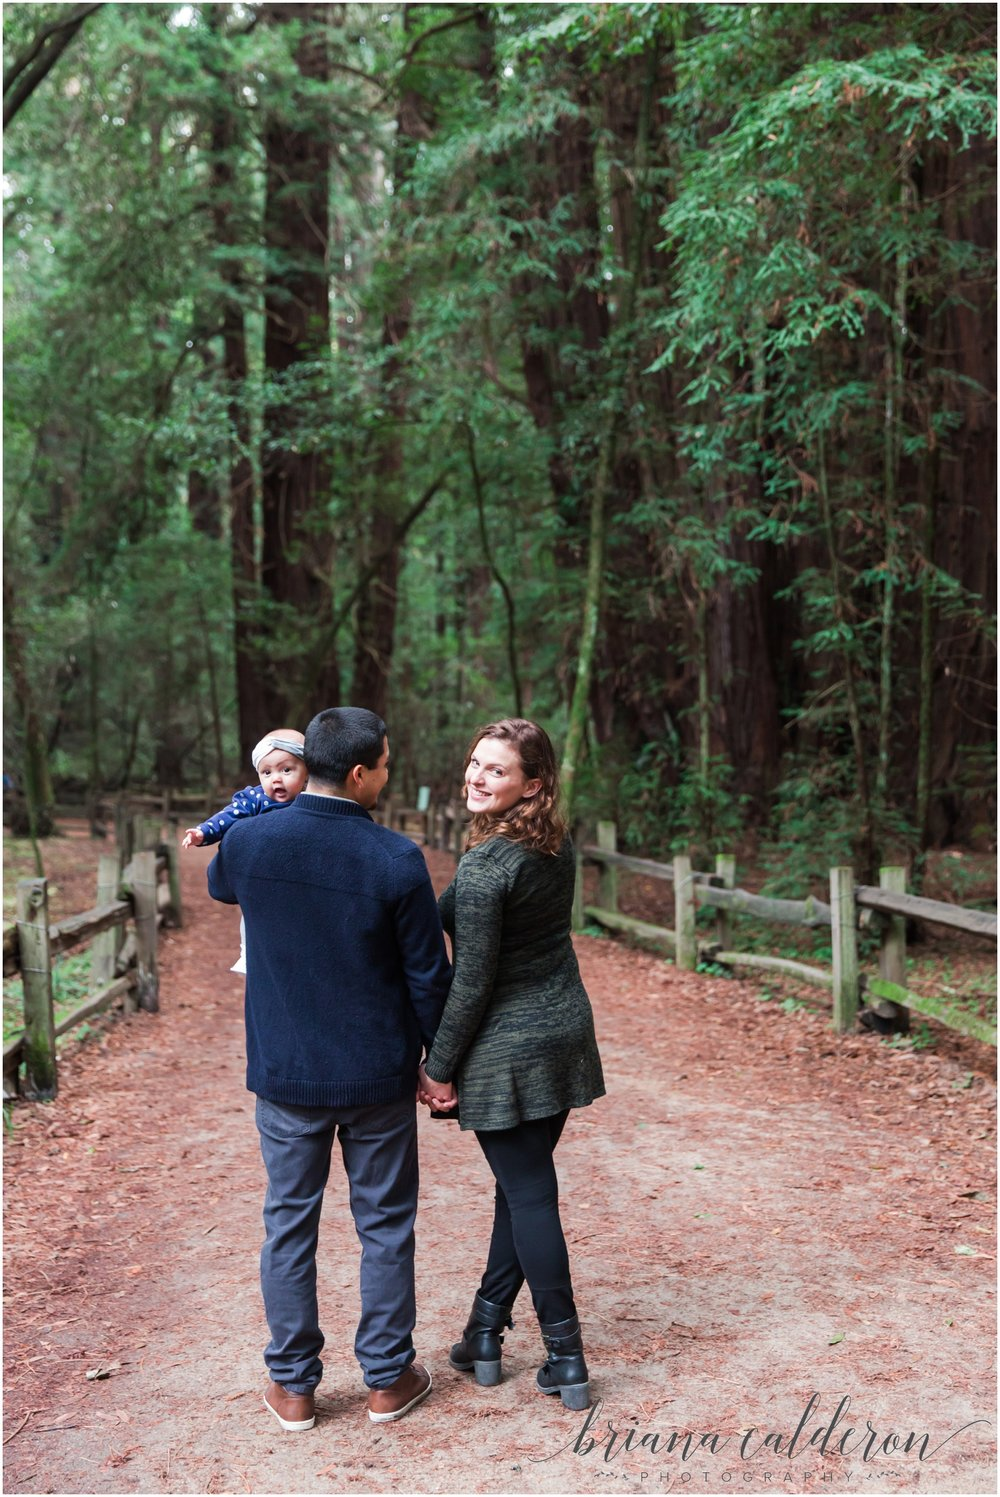 Engagement pictures at Henry Cowell Redwoods in Felton, CA by Briana Calderon Photography_1323.jpg